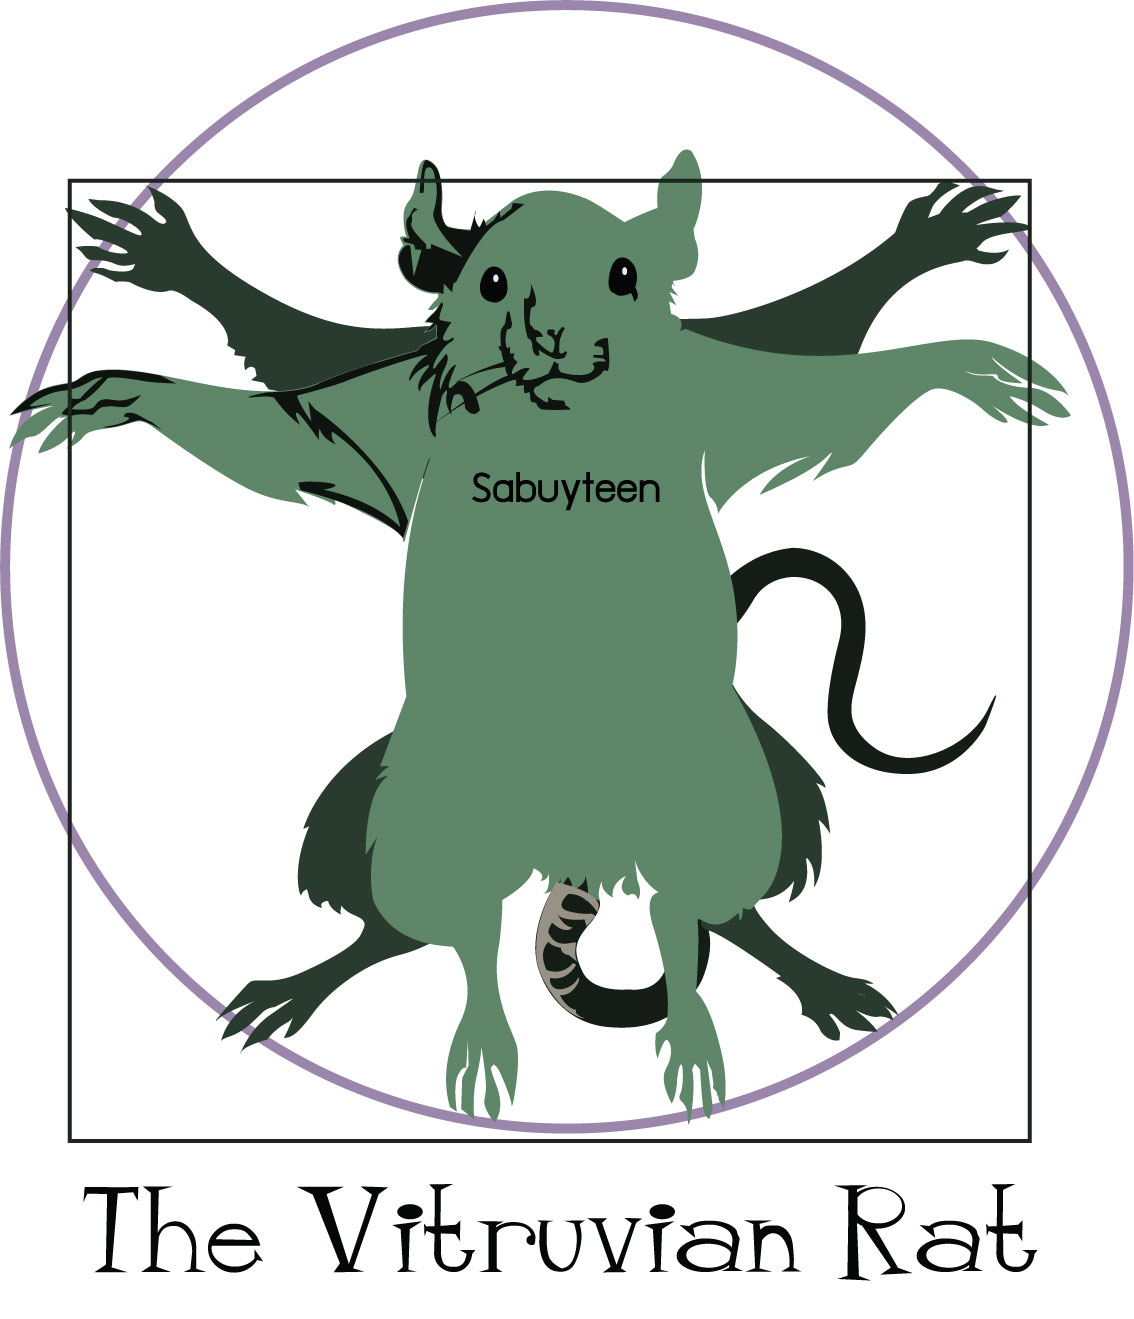 vitruvian Rat_by sabuyteen